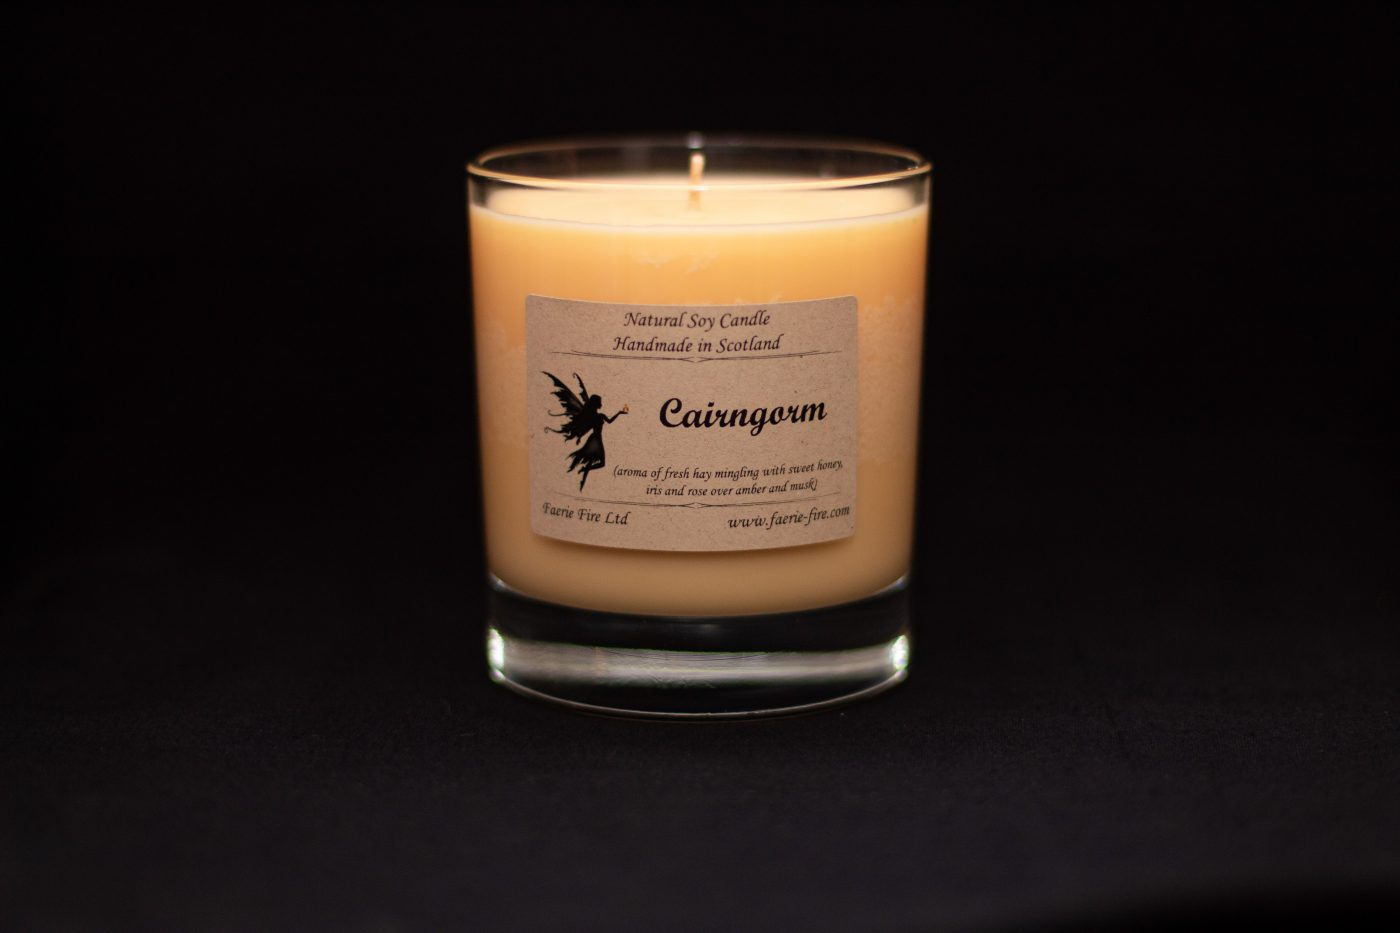 Pale dusky yellow Cairngorm Jar Candle smelling like hay, honey and amber in a dark background